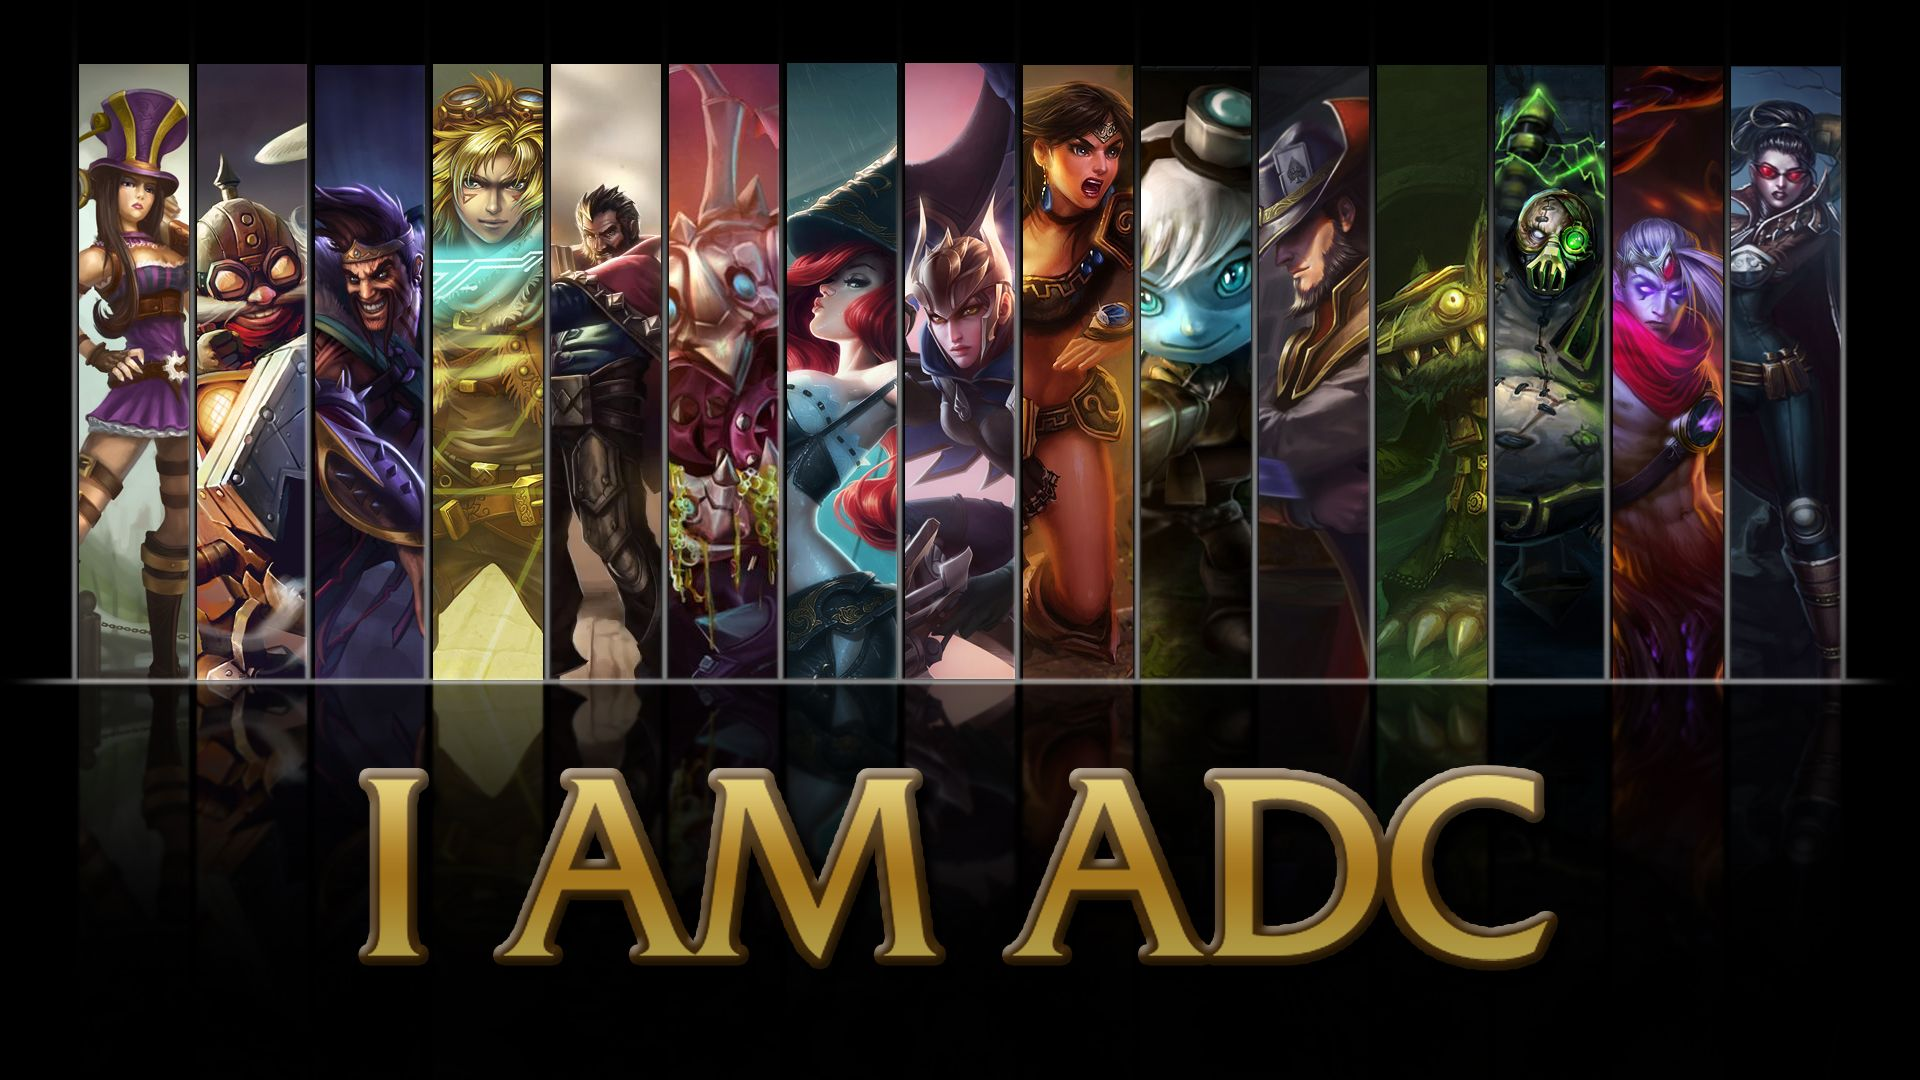 League Of Legends Adc Wallpaper In 2019 League Of Legends